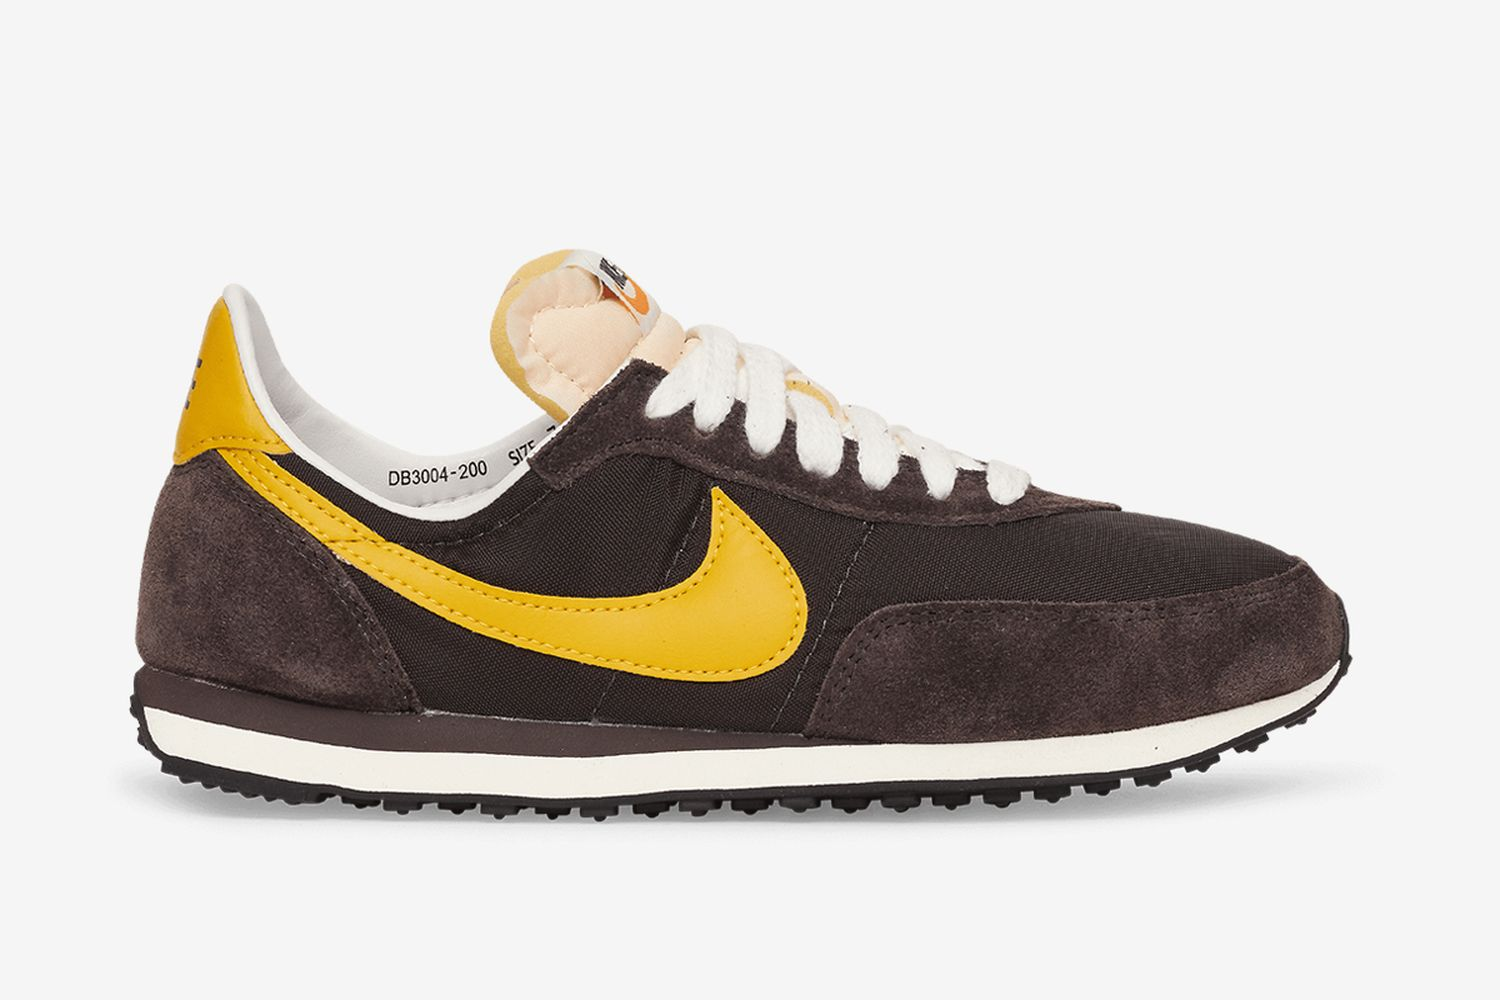 Waffle Trainer 2 SP Sneakers